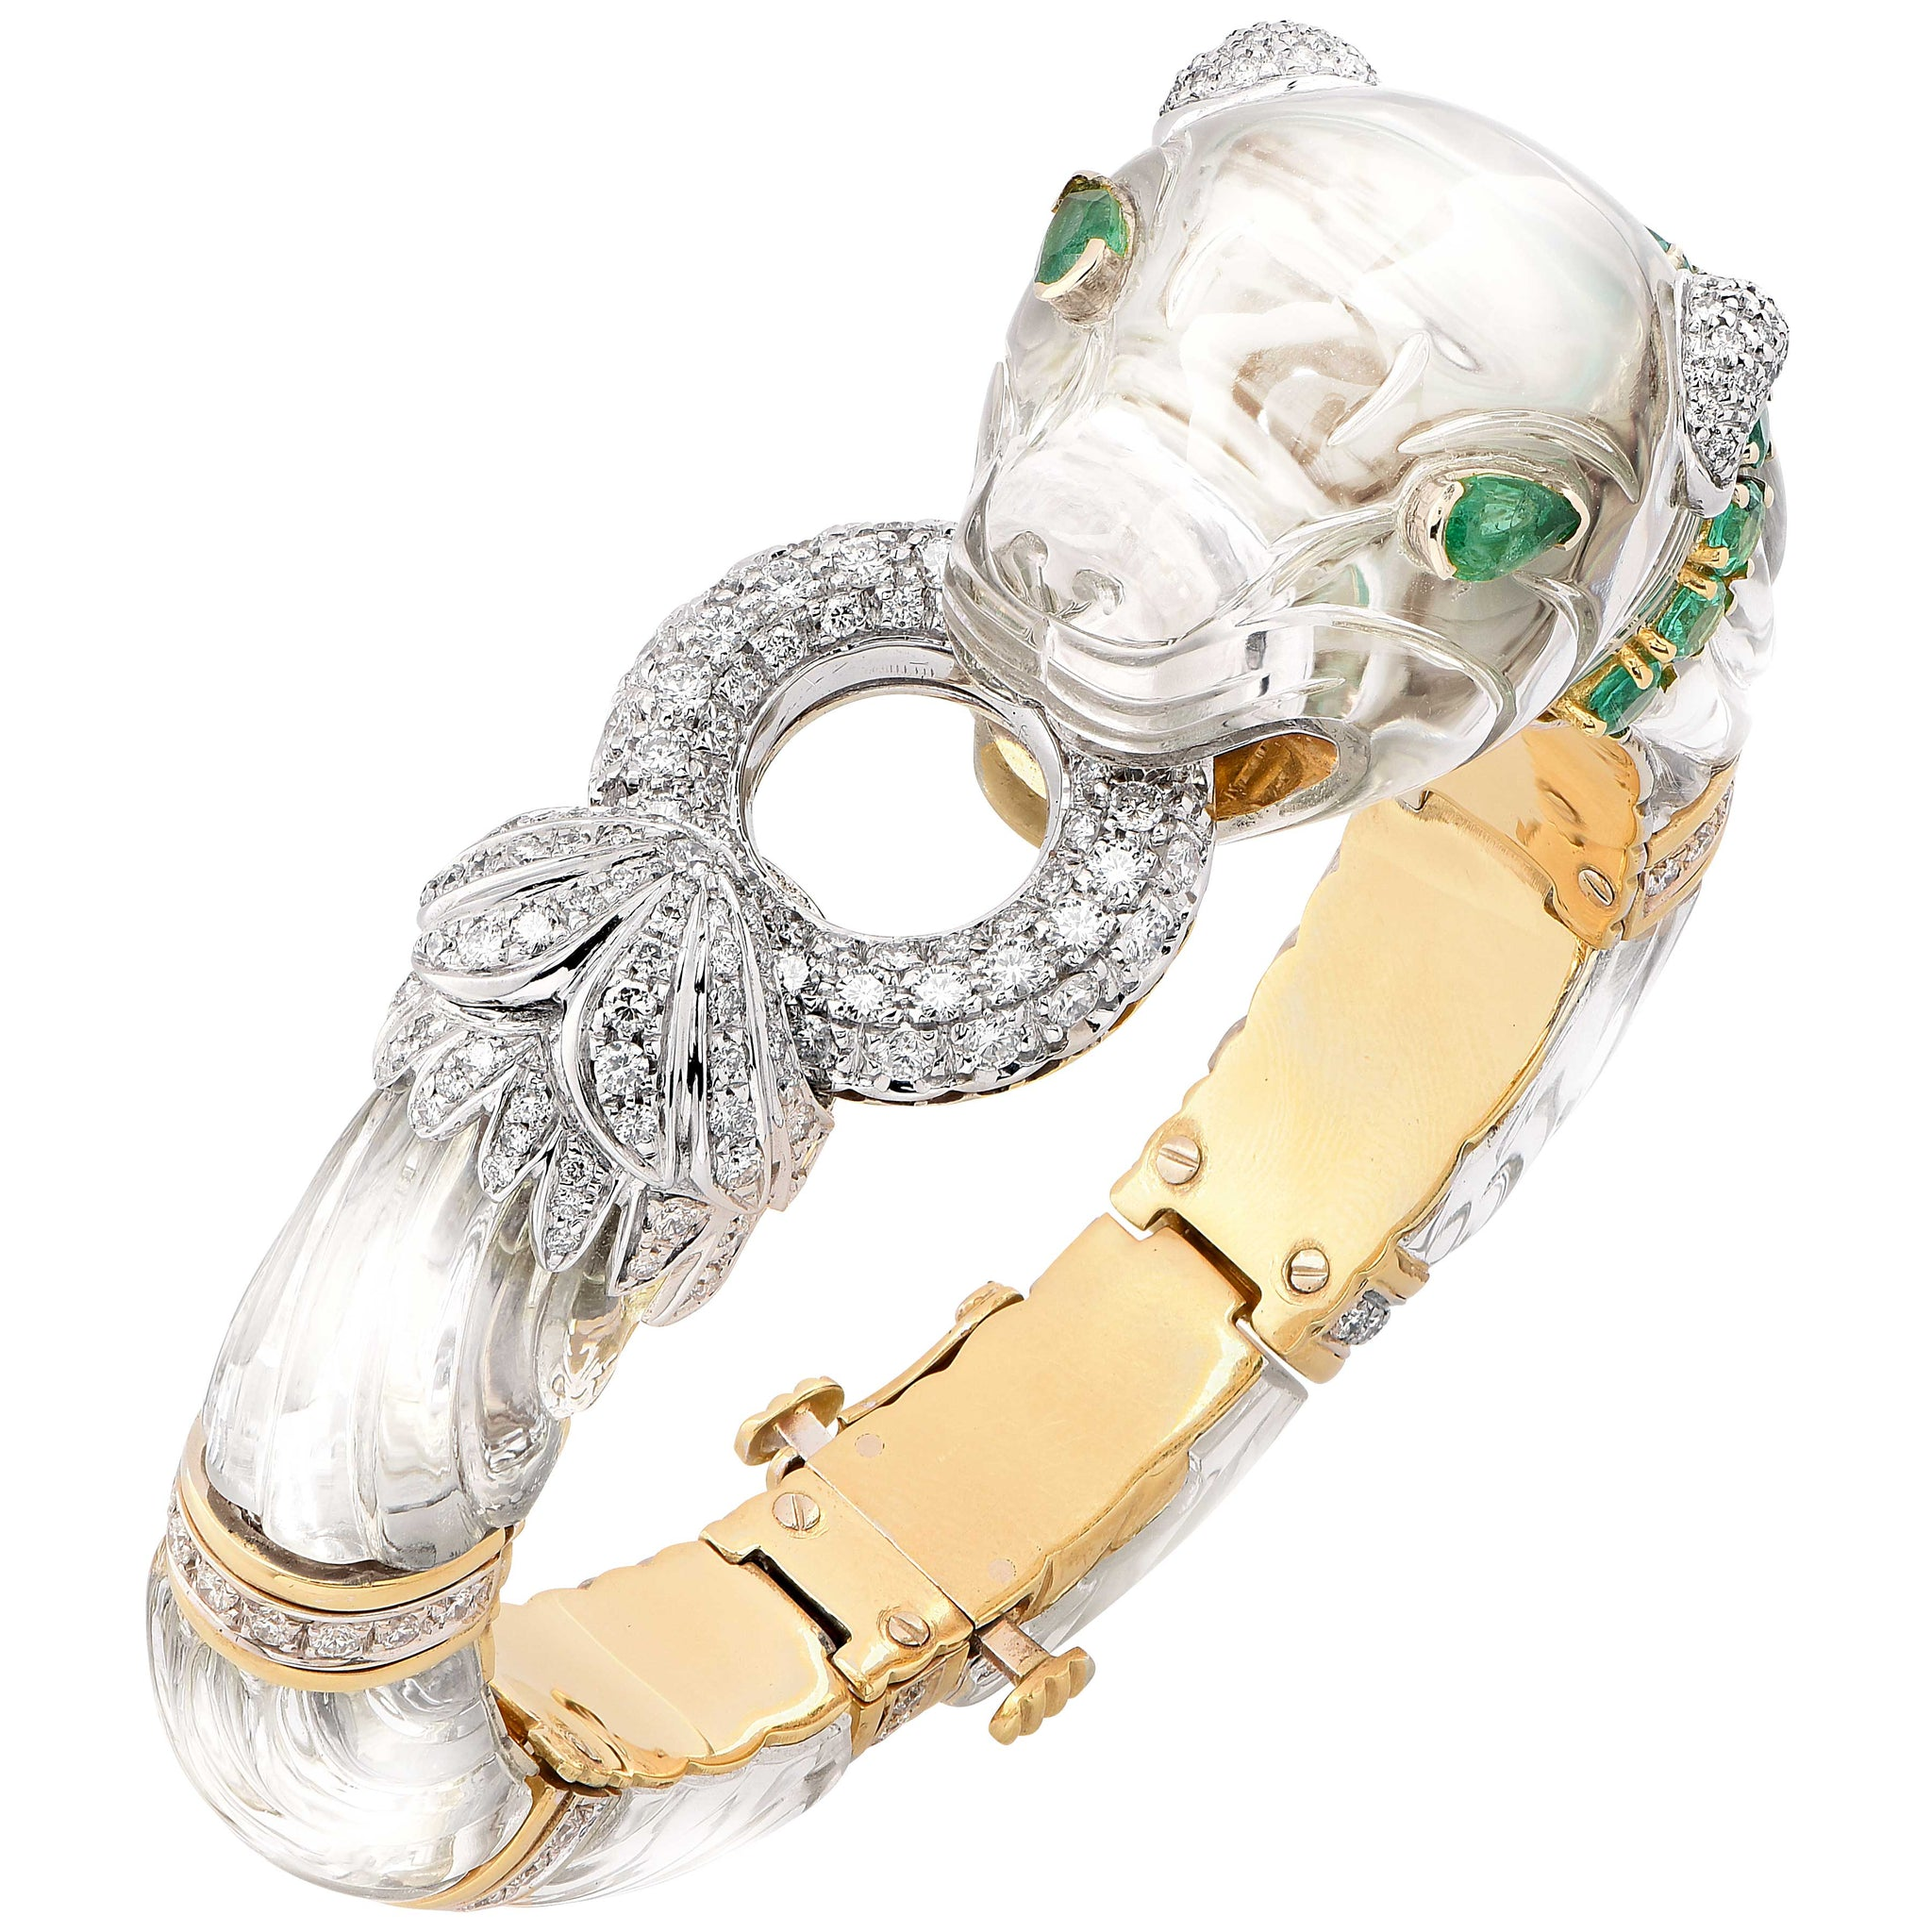 graff open bracelets collections bracelet sapphire diamond cut and a classic emerald